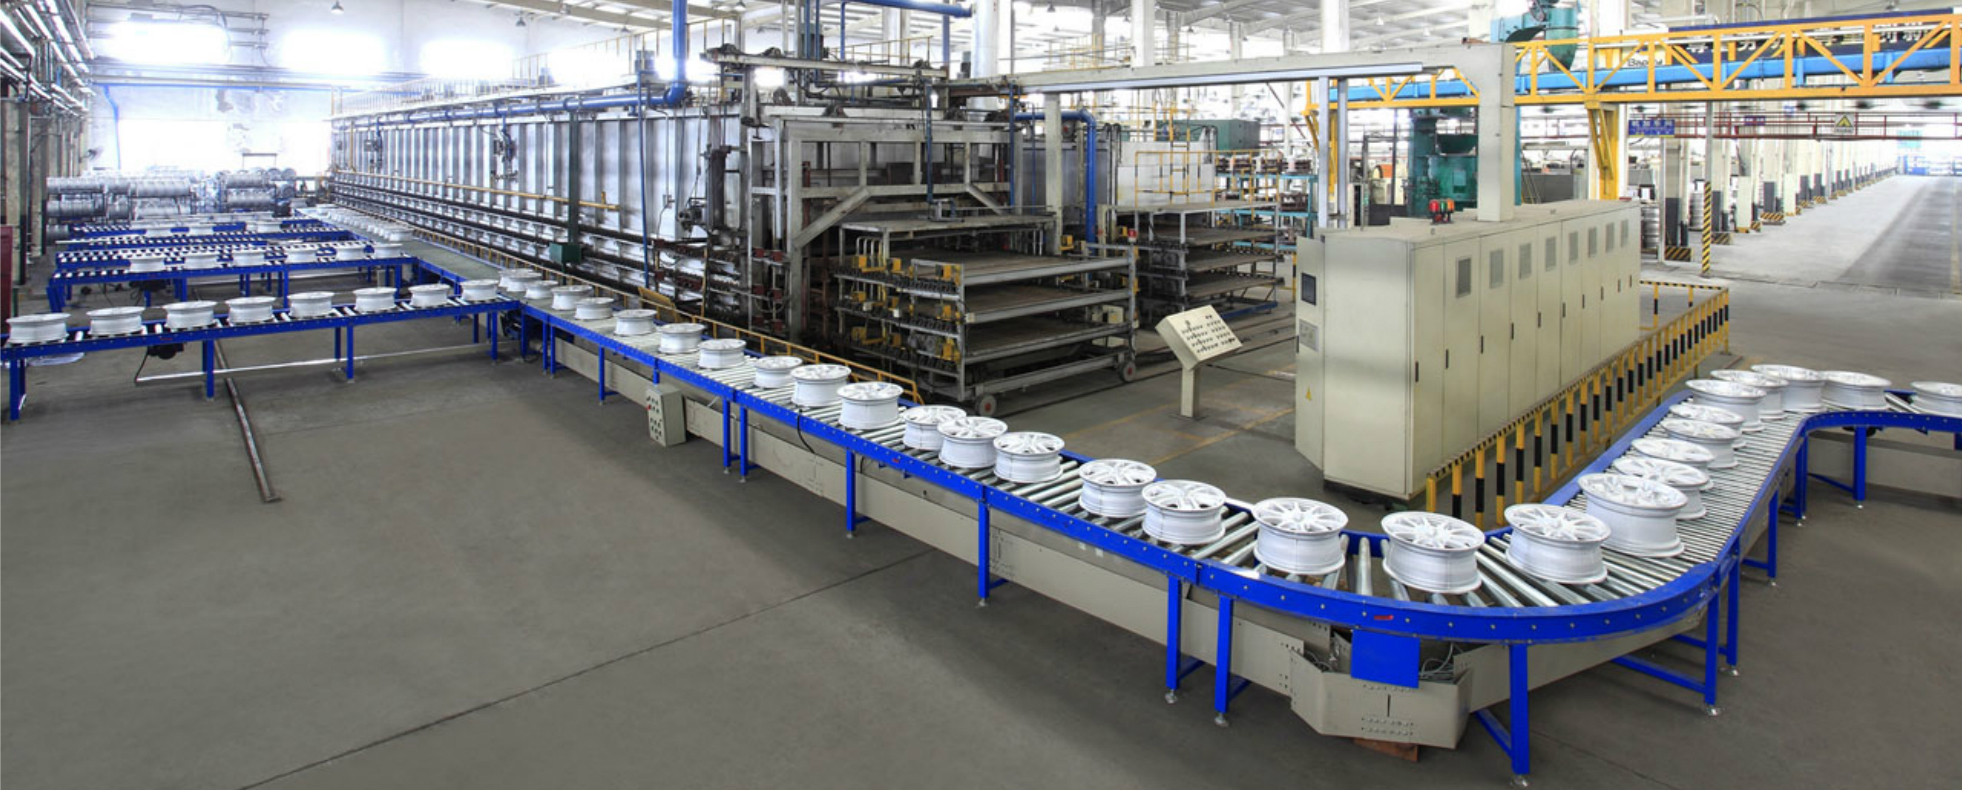 Automotive steel wheel production line for light cars, commercial cars